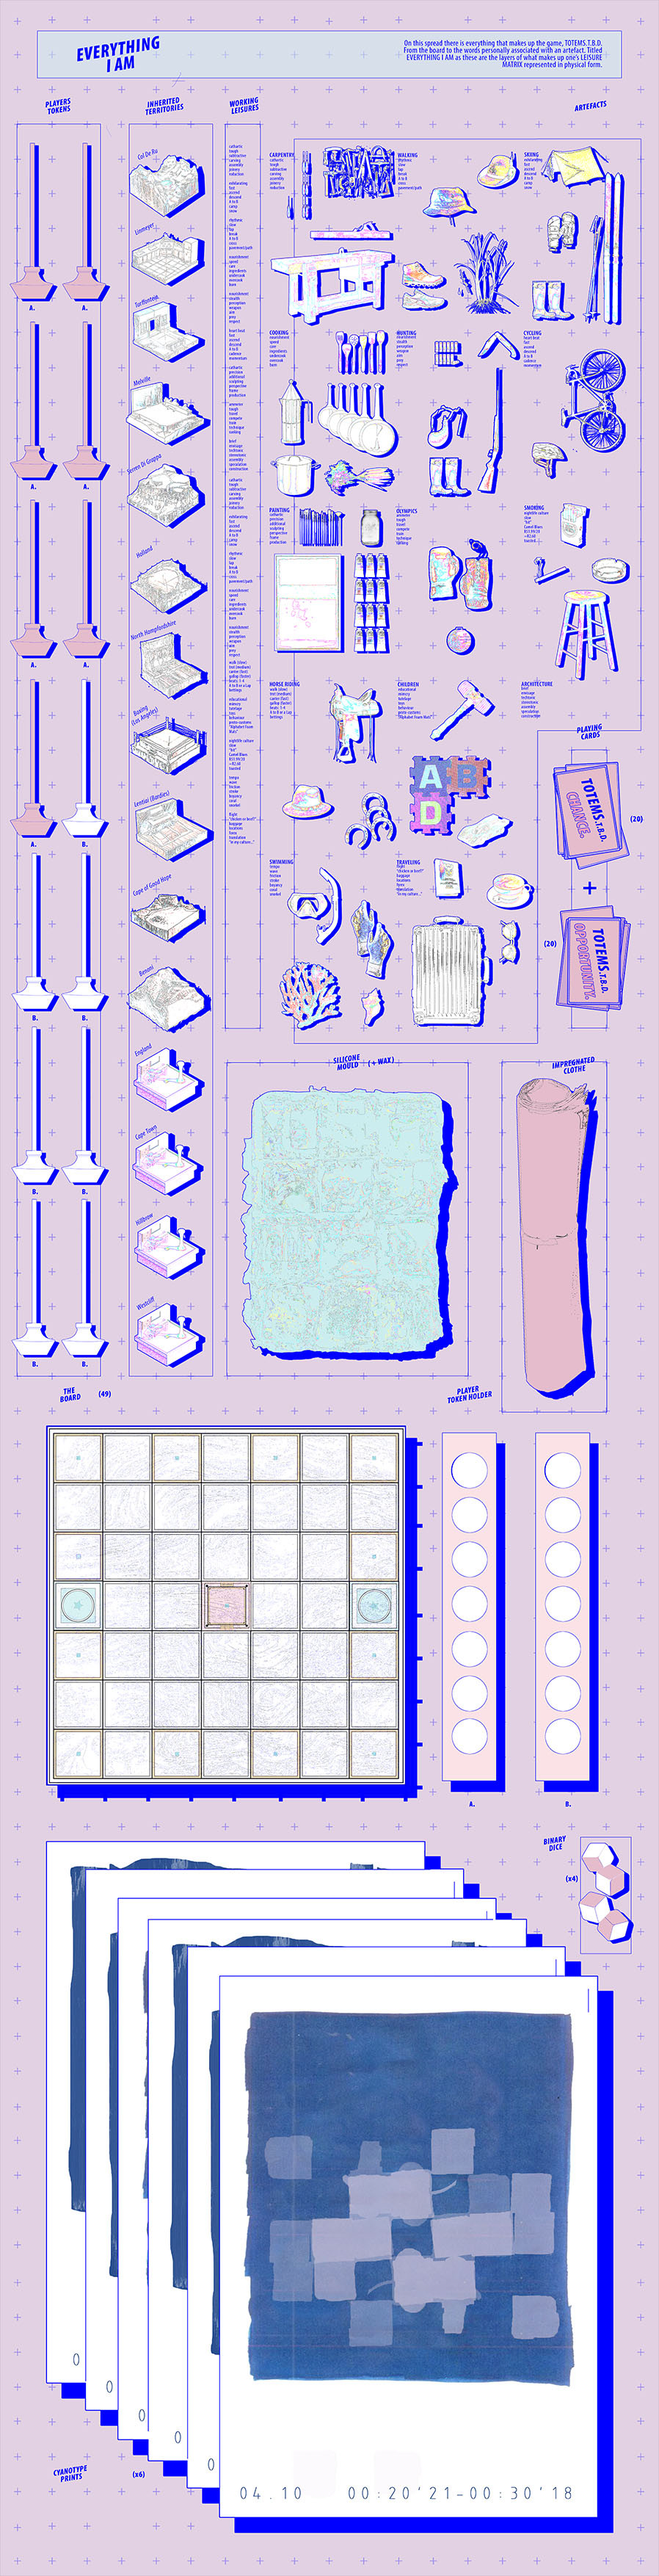 Everything I Am / Game Instrument Component List. Rech, G. Unit 14. 2020.